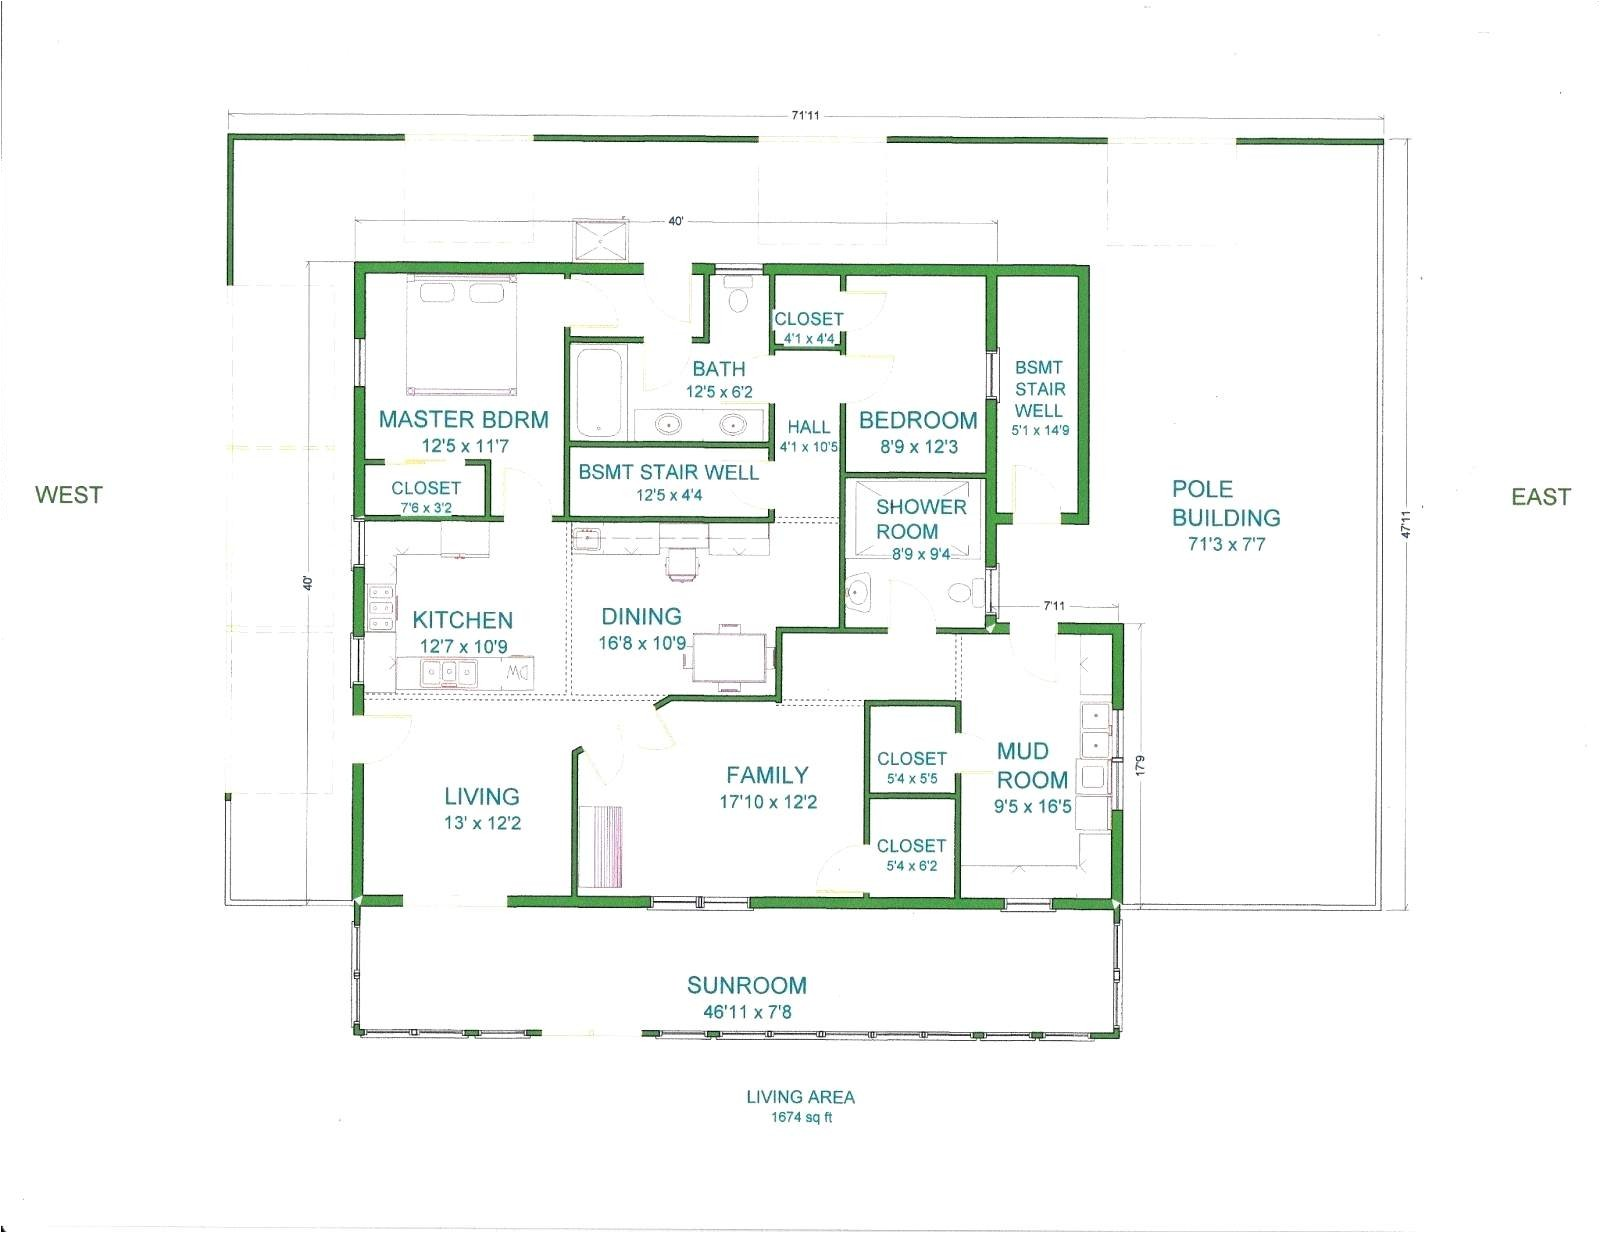 affordable energy efficient home plans lovely home design floor plans unique dazzling free house floor plans 39